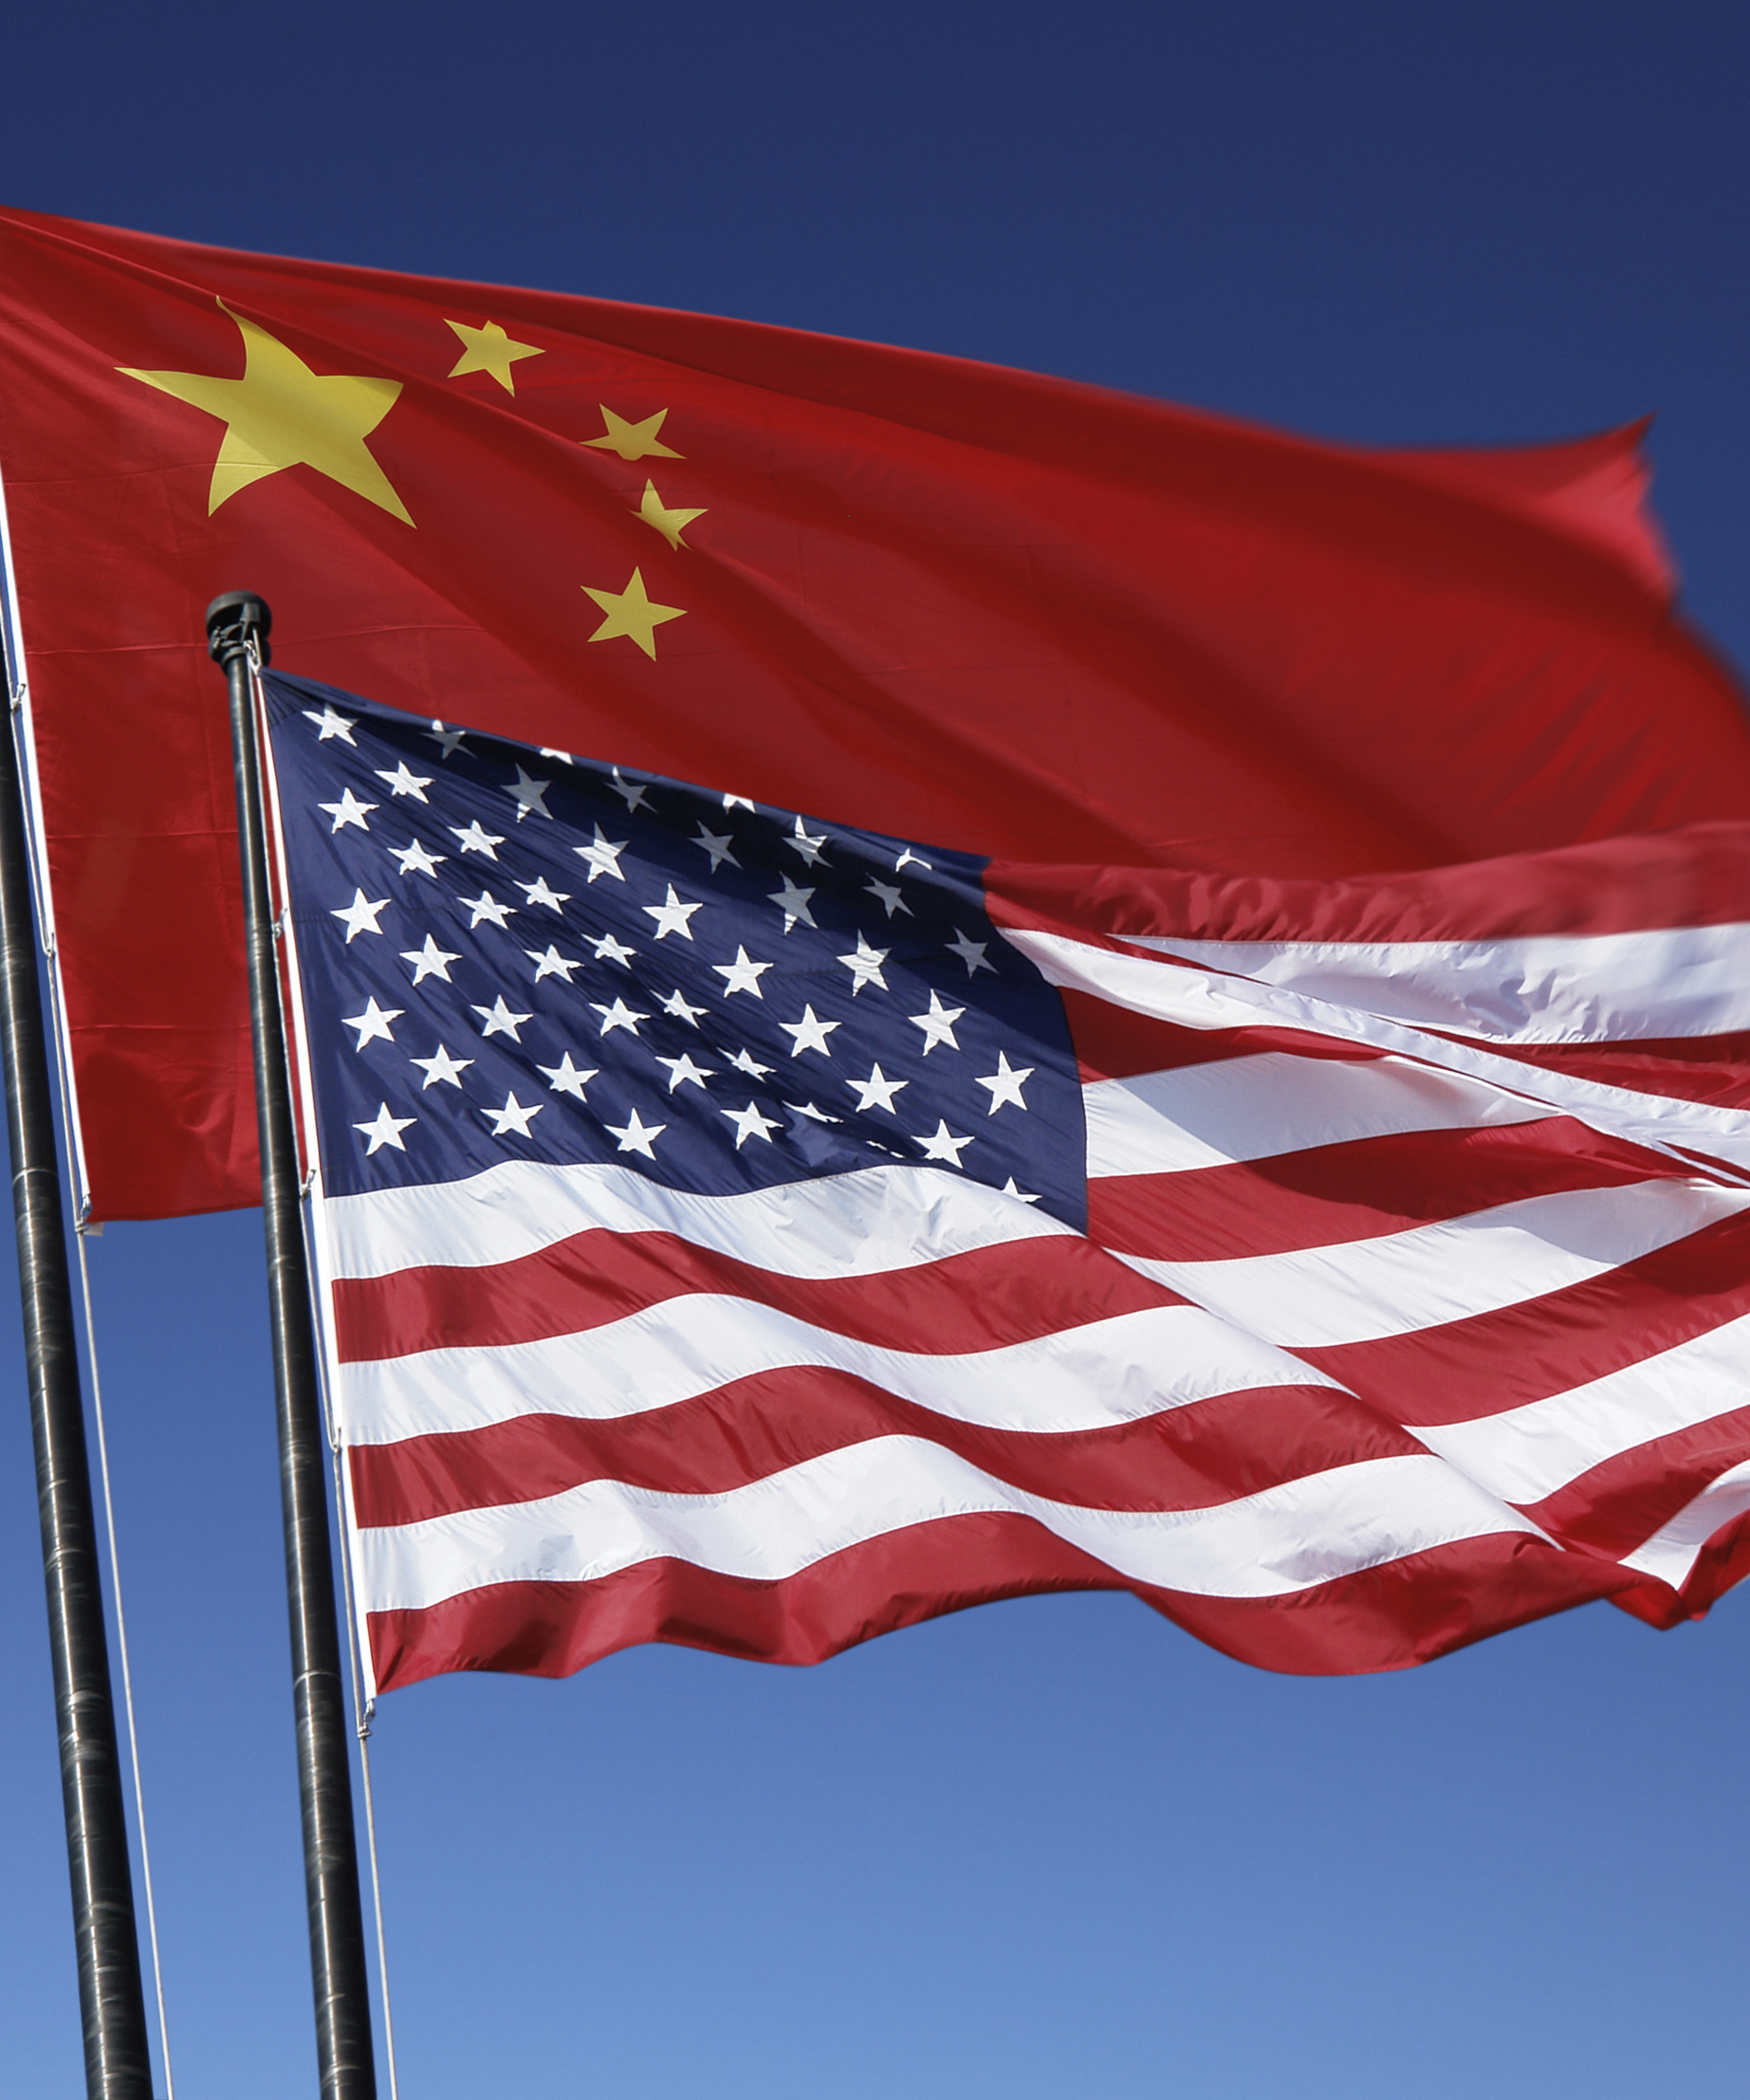 U.S. and PRC flags